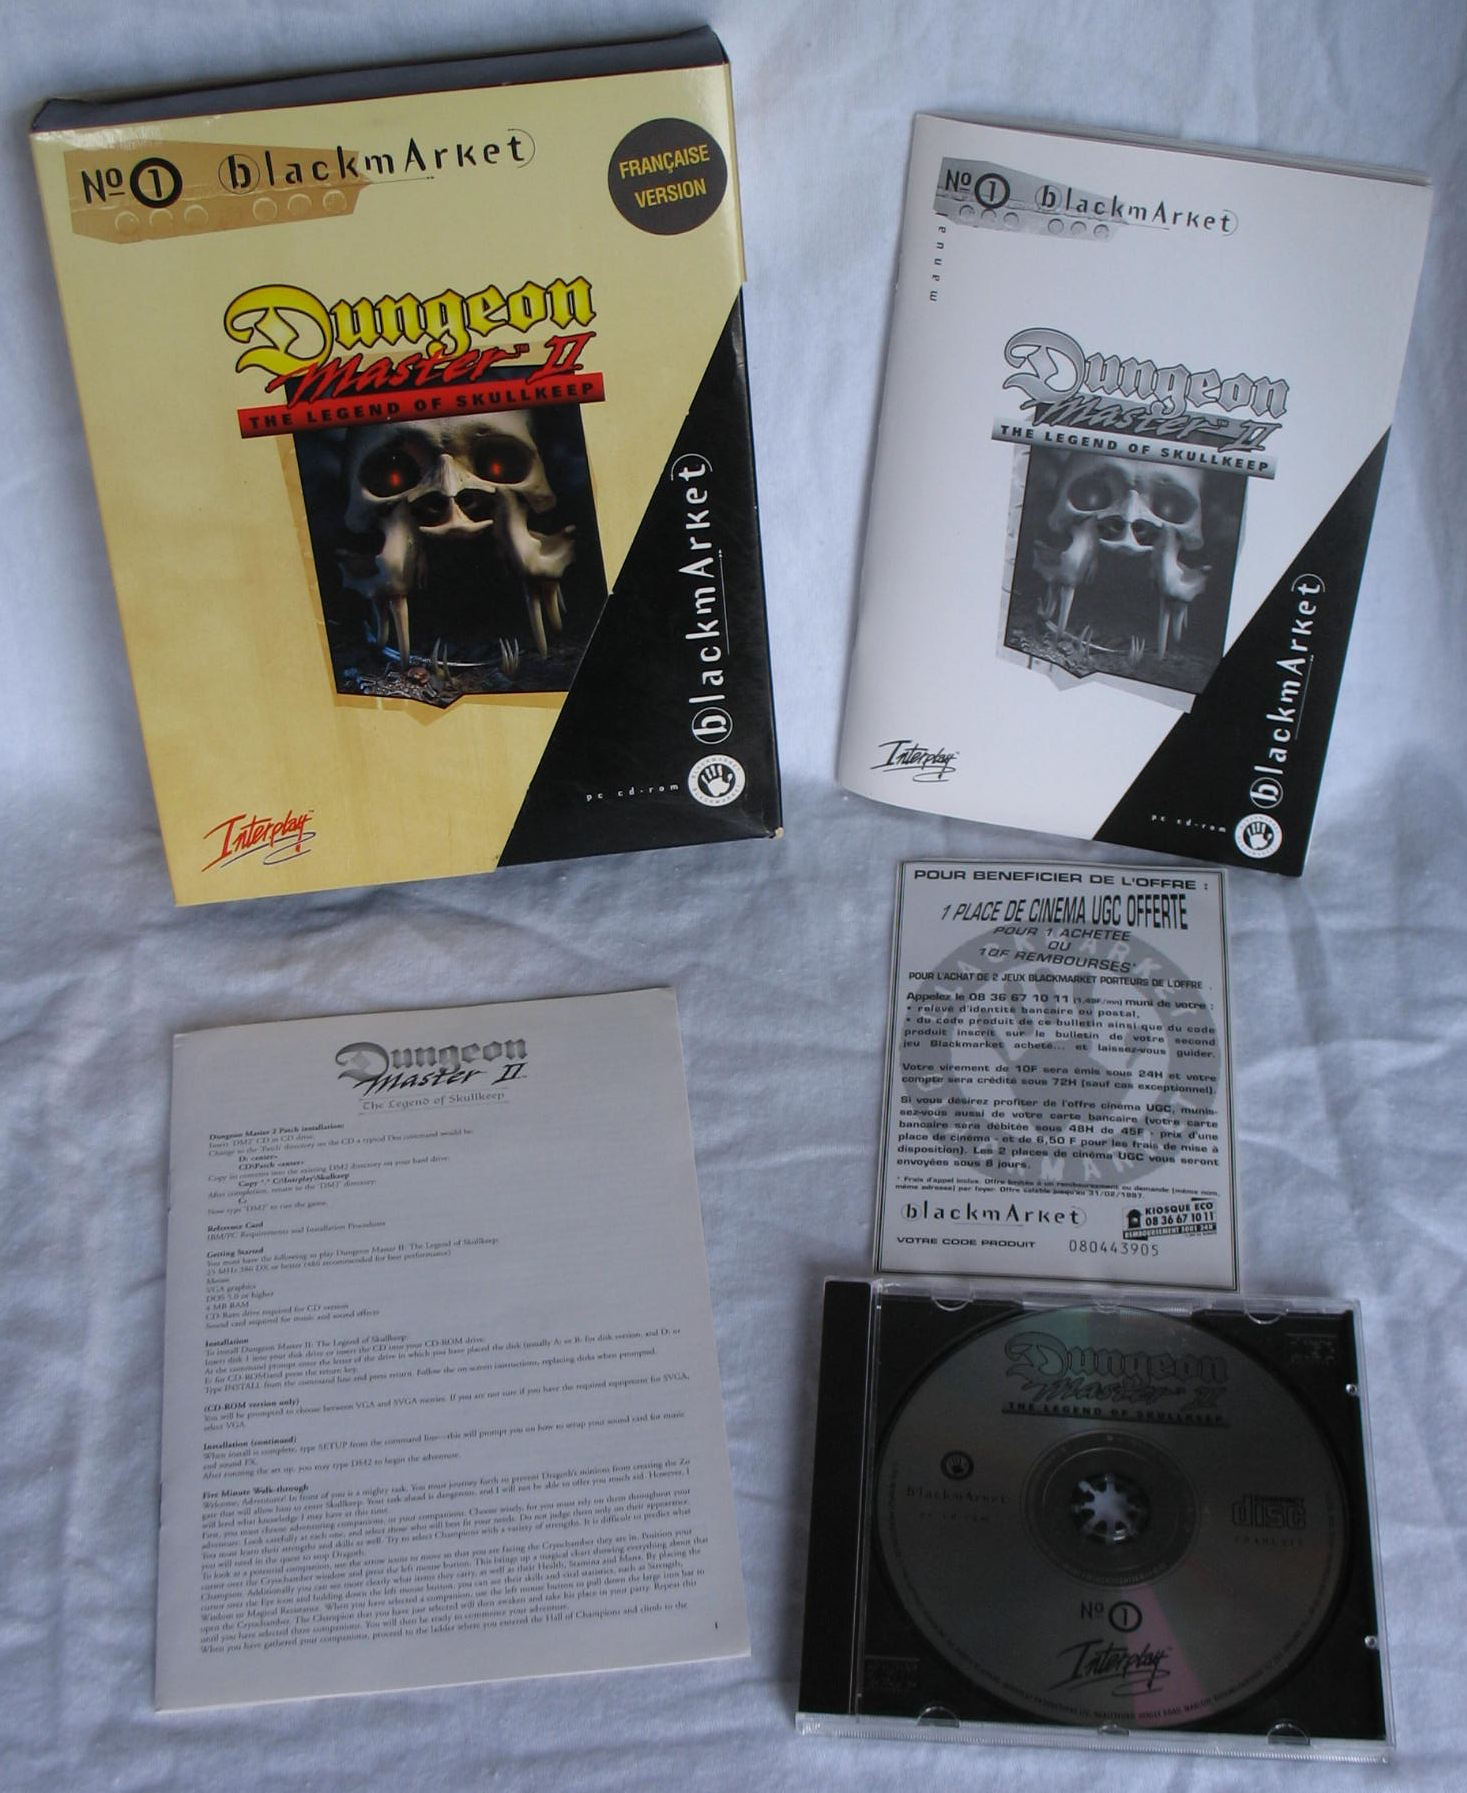 Game - Dungeon Master II - FR - PC - Blackmarket With Manual - All - Overview - Photo